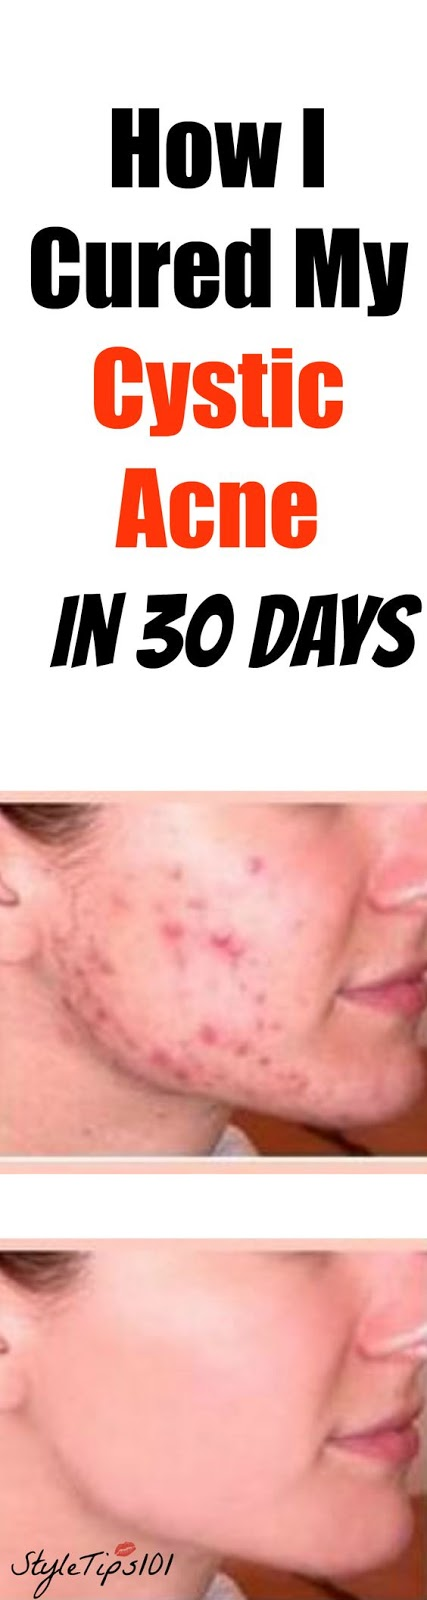 How I Cured My Cystic Acne In 30 Days